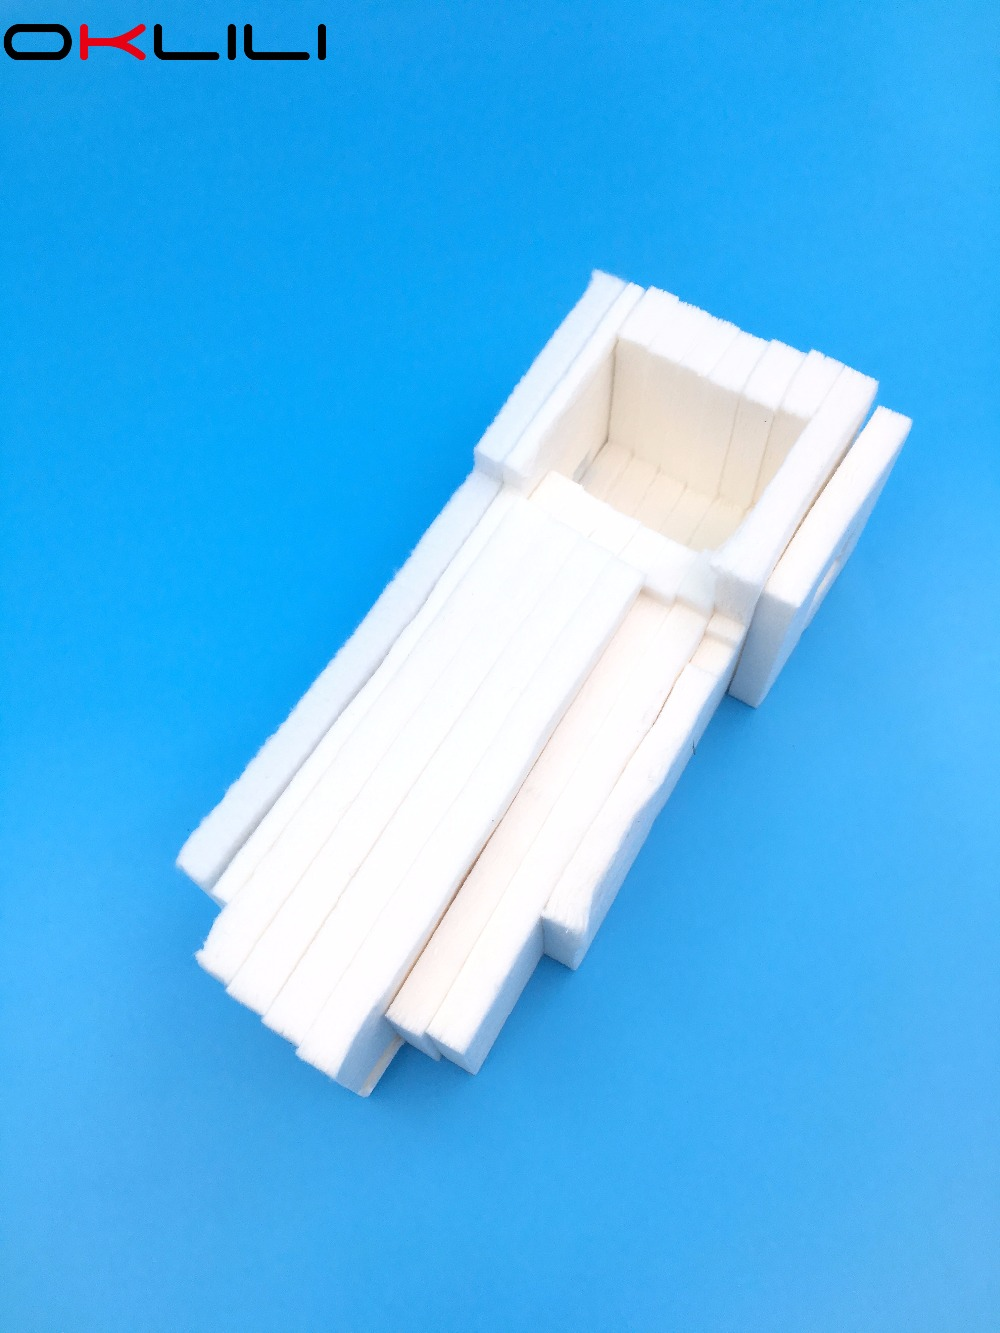 1PC Tray Porous Pad Waste Ink Tank Sponge for Epson ET-4500 L550 L551 L555 L558 L565 L575 L566 M200 M100 M105 M205 WF2010 WF2510 new and original for epson pro 4880 4880c 4400 4450 7600 9600 7400 4880 porous pad assy ink tray porous pad ink